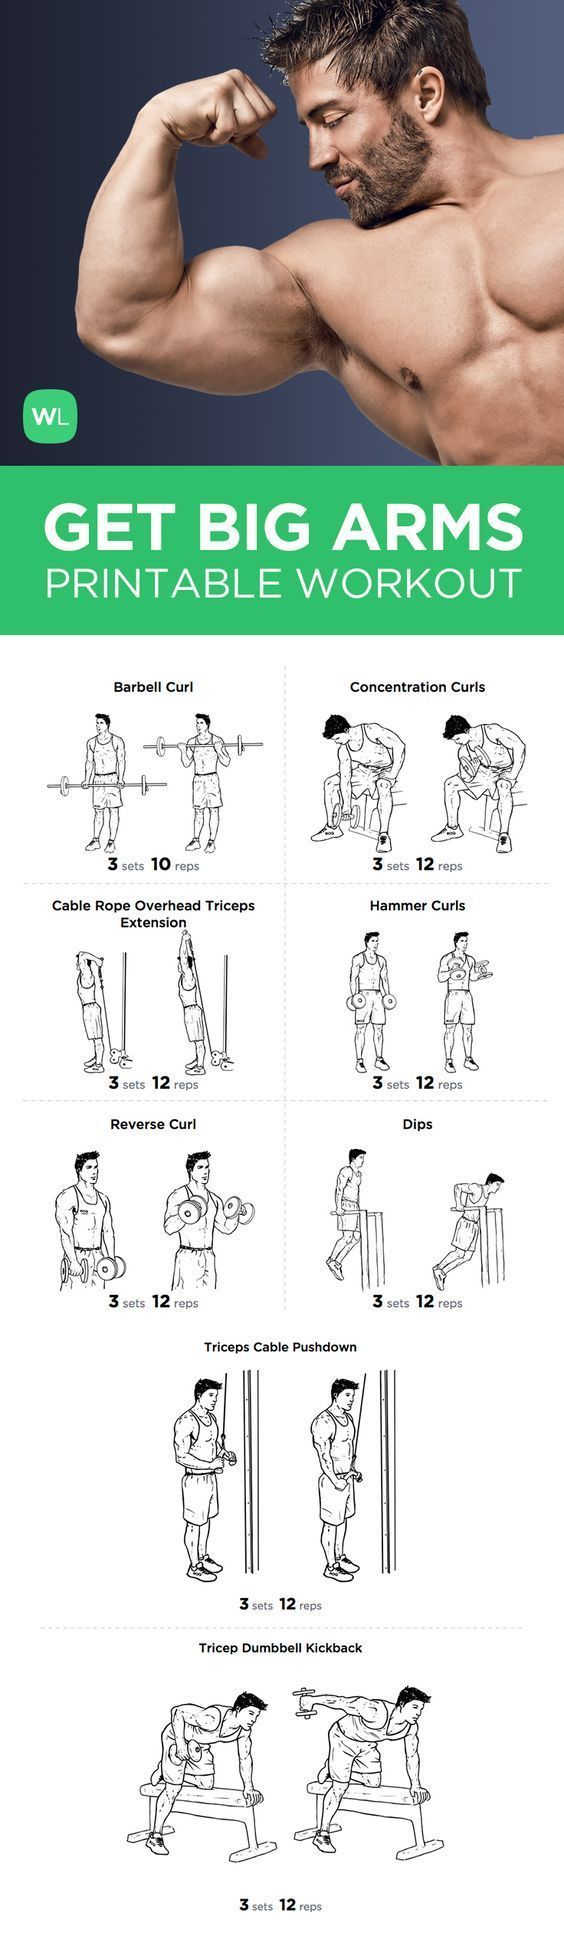 Visit http://workoutlabs.com/workout-plans/big-arms-workout-with-biceps-and-triceps-exercises-printable-routine/ for a FREE PDF of this Bog Arms Bicep and Tricep printable workout with easy-to-follow exercise illustrations.: | See more about Big Arm Workout, Workout and Printable Workouts.